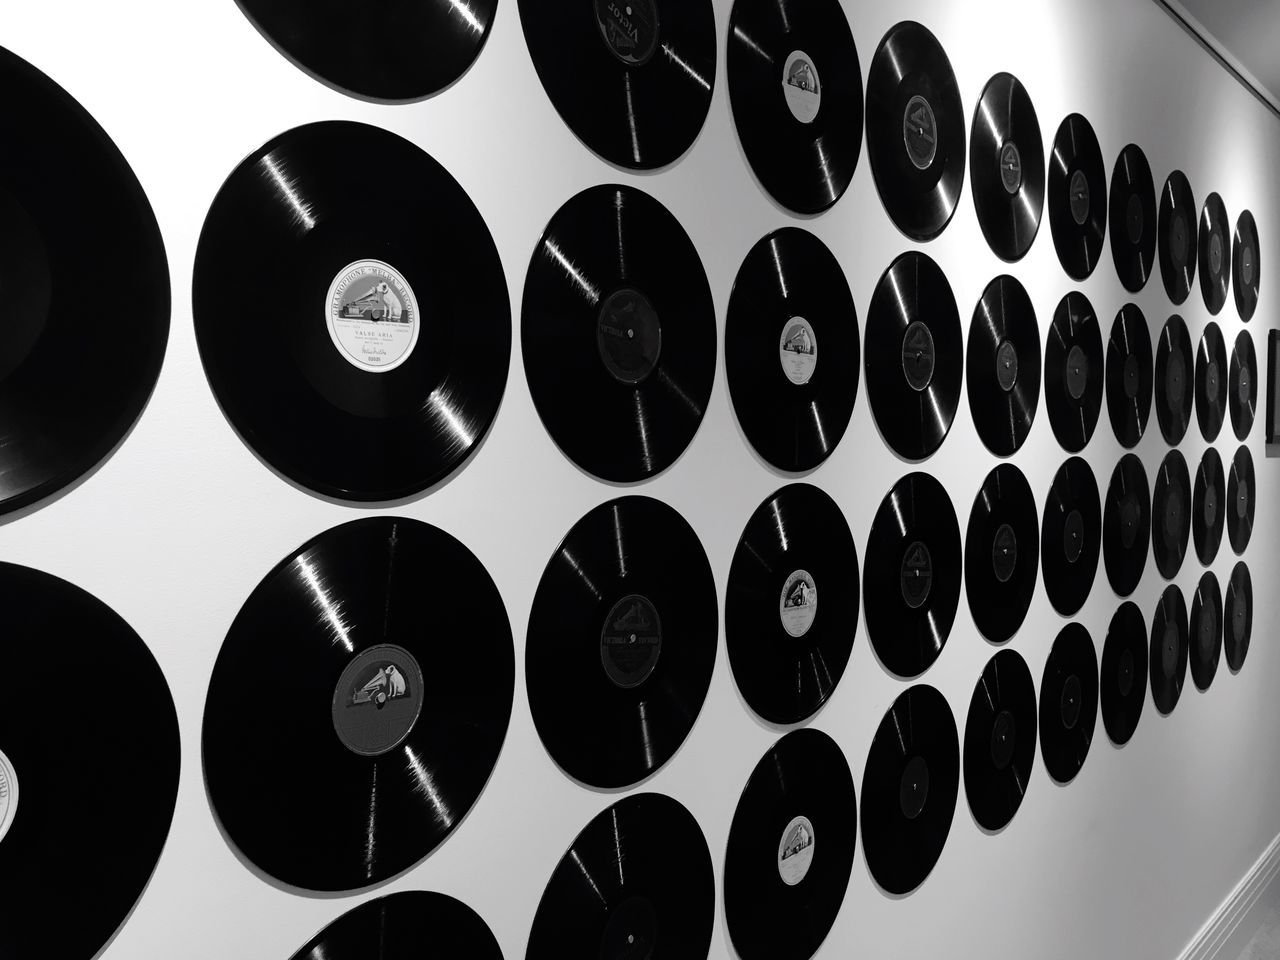 Record Vintage Indoors  Black Color Circle Abstract Pattern Display Lines Shapes Lines And Shapes Curves Monochrome Blackandwhite Wall ] Taking Pictures Taking Photos Records Black Eye4photography